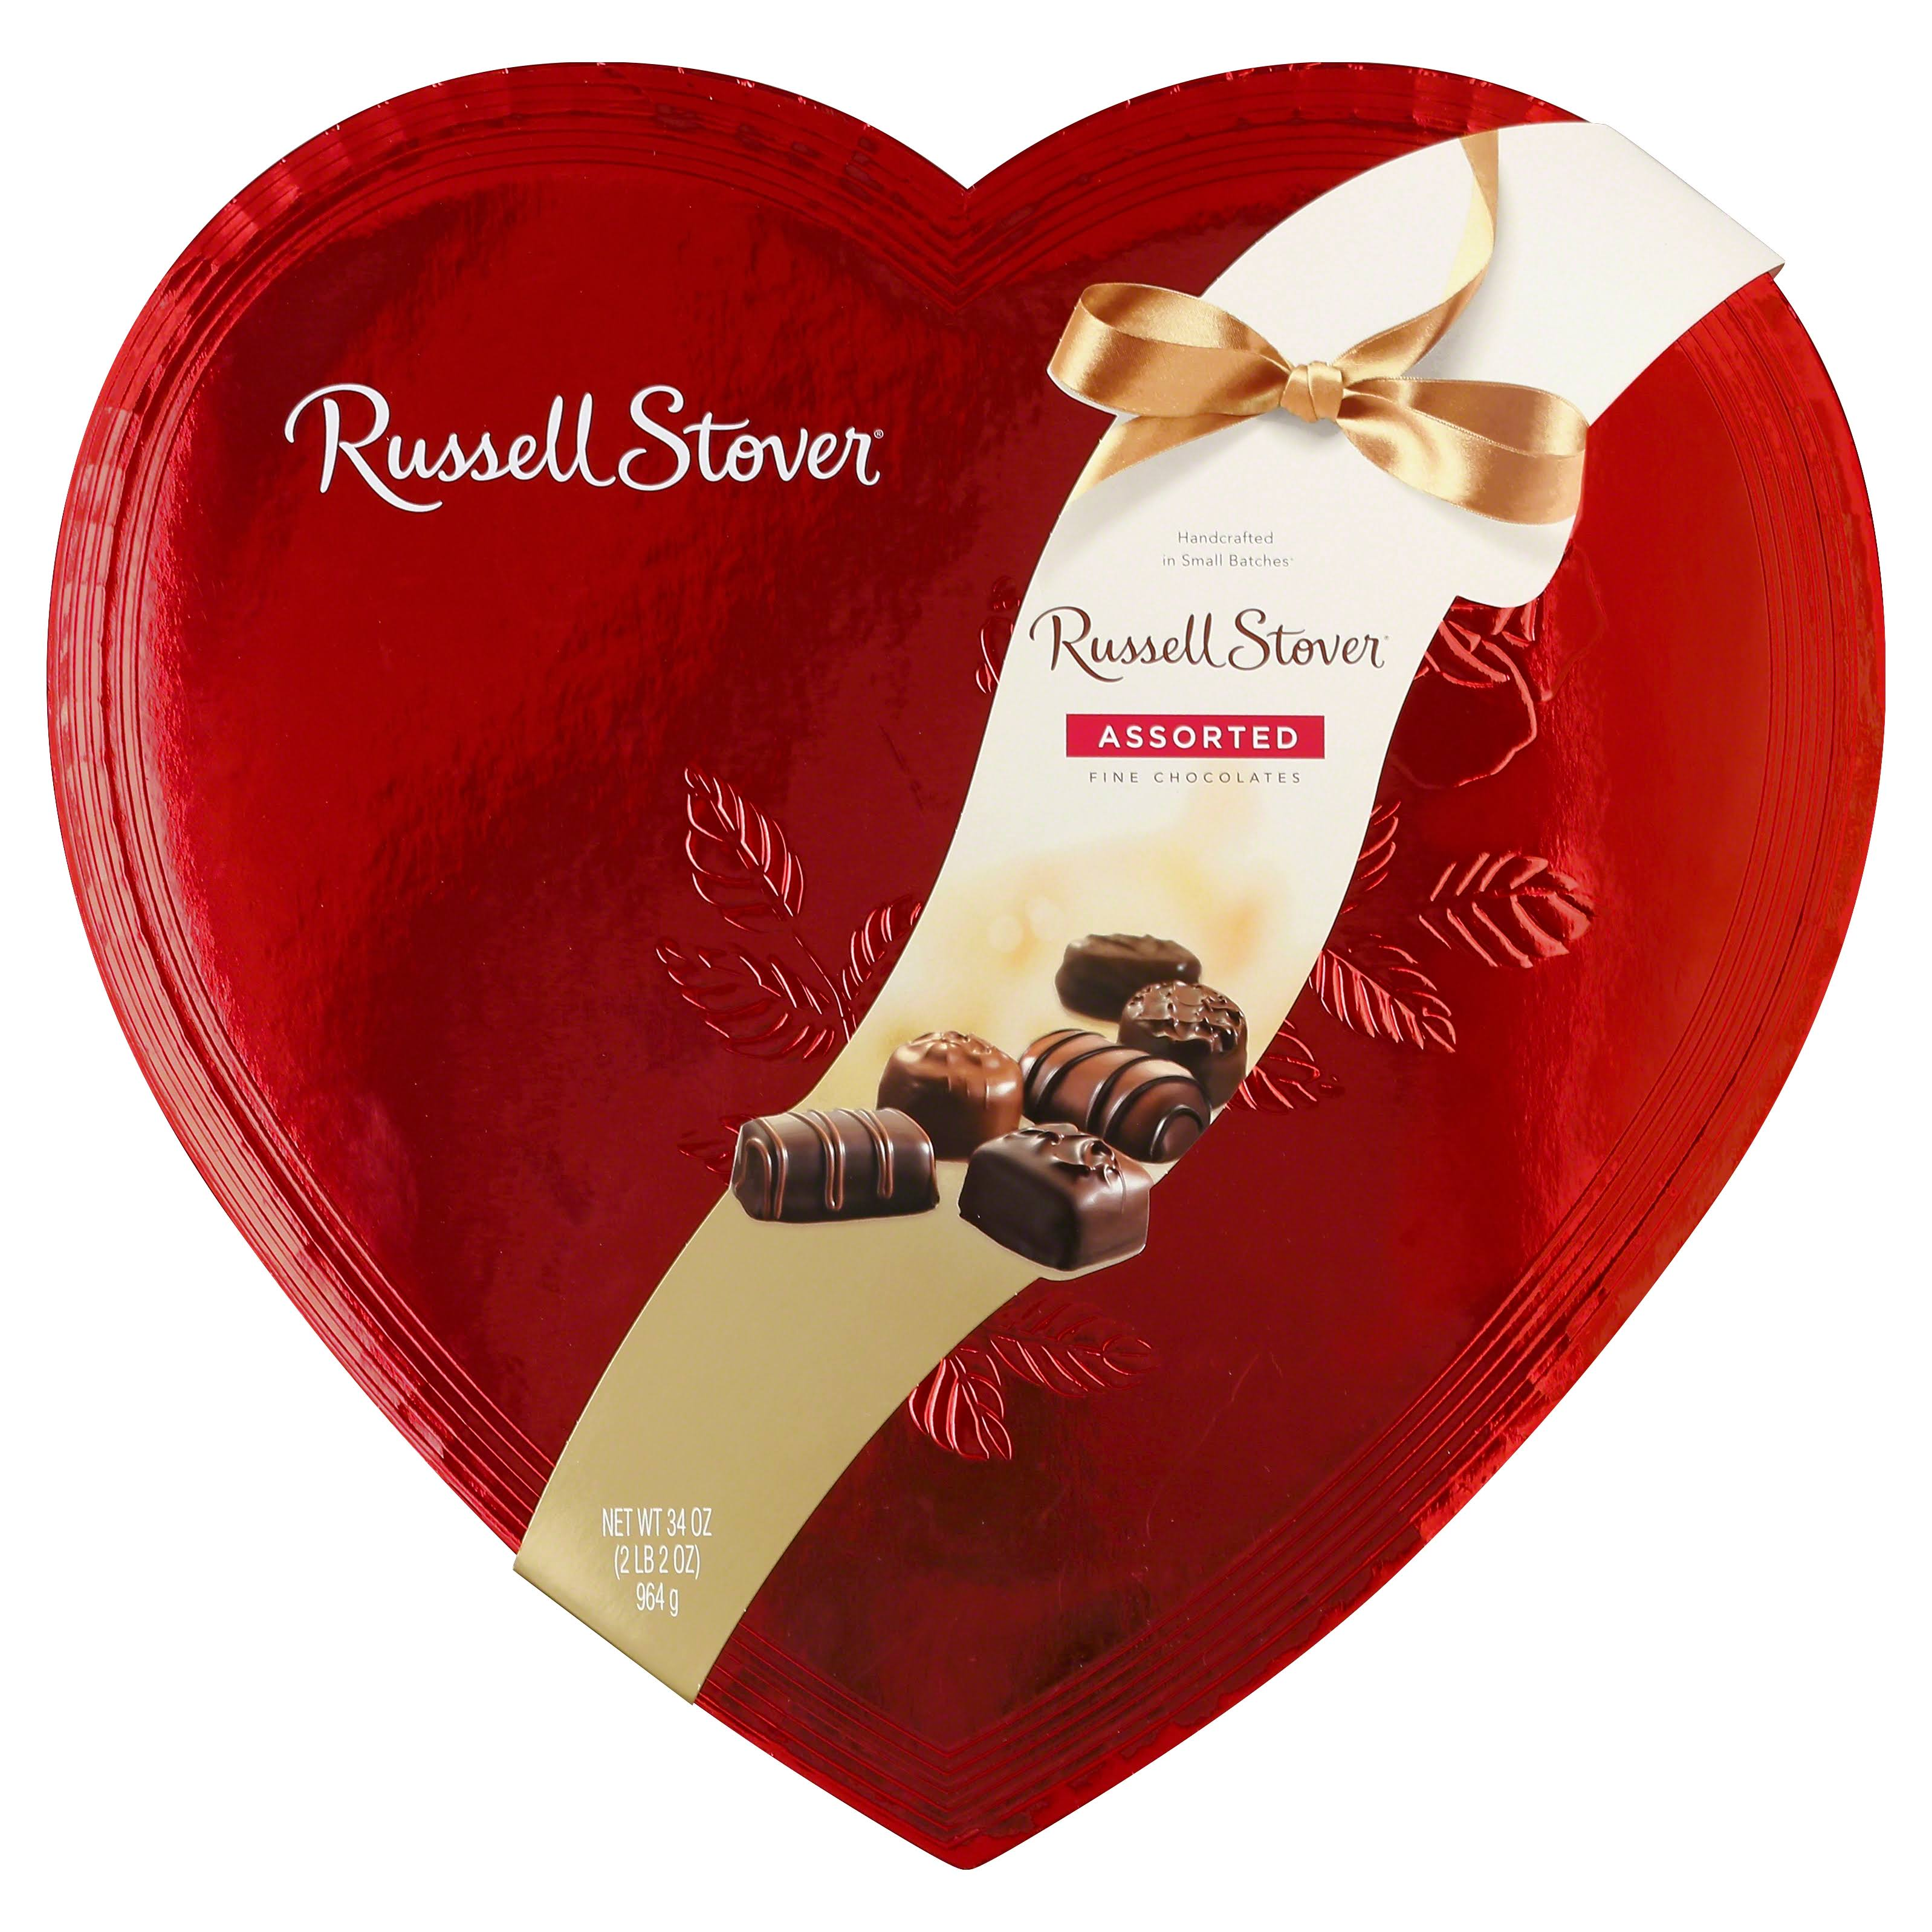 Russell Stover Assorted Fine Chocolates - 59ct, 34oz